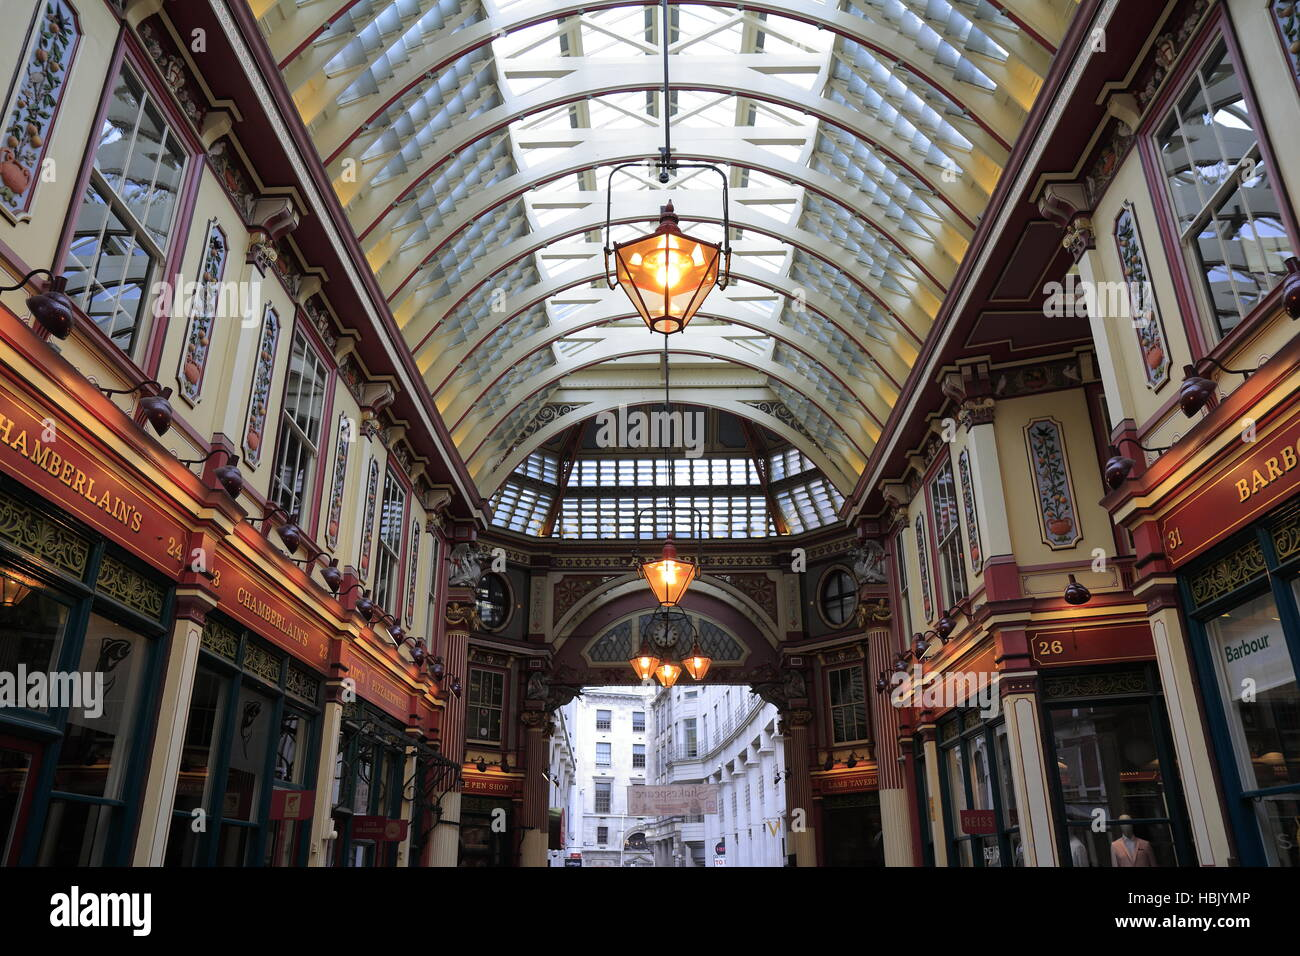 Leadenhall market covered shopping arcade - Stock Image